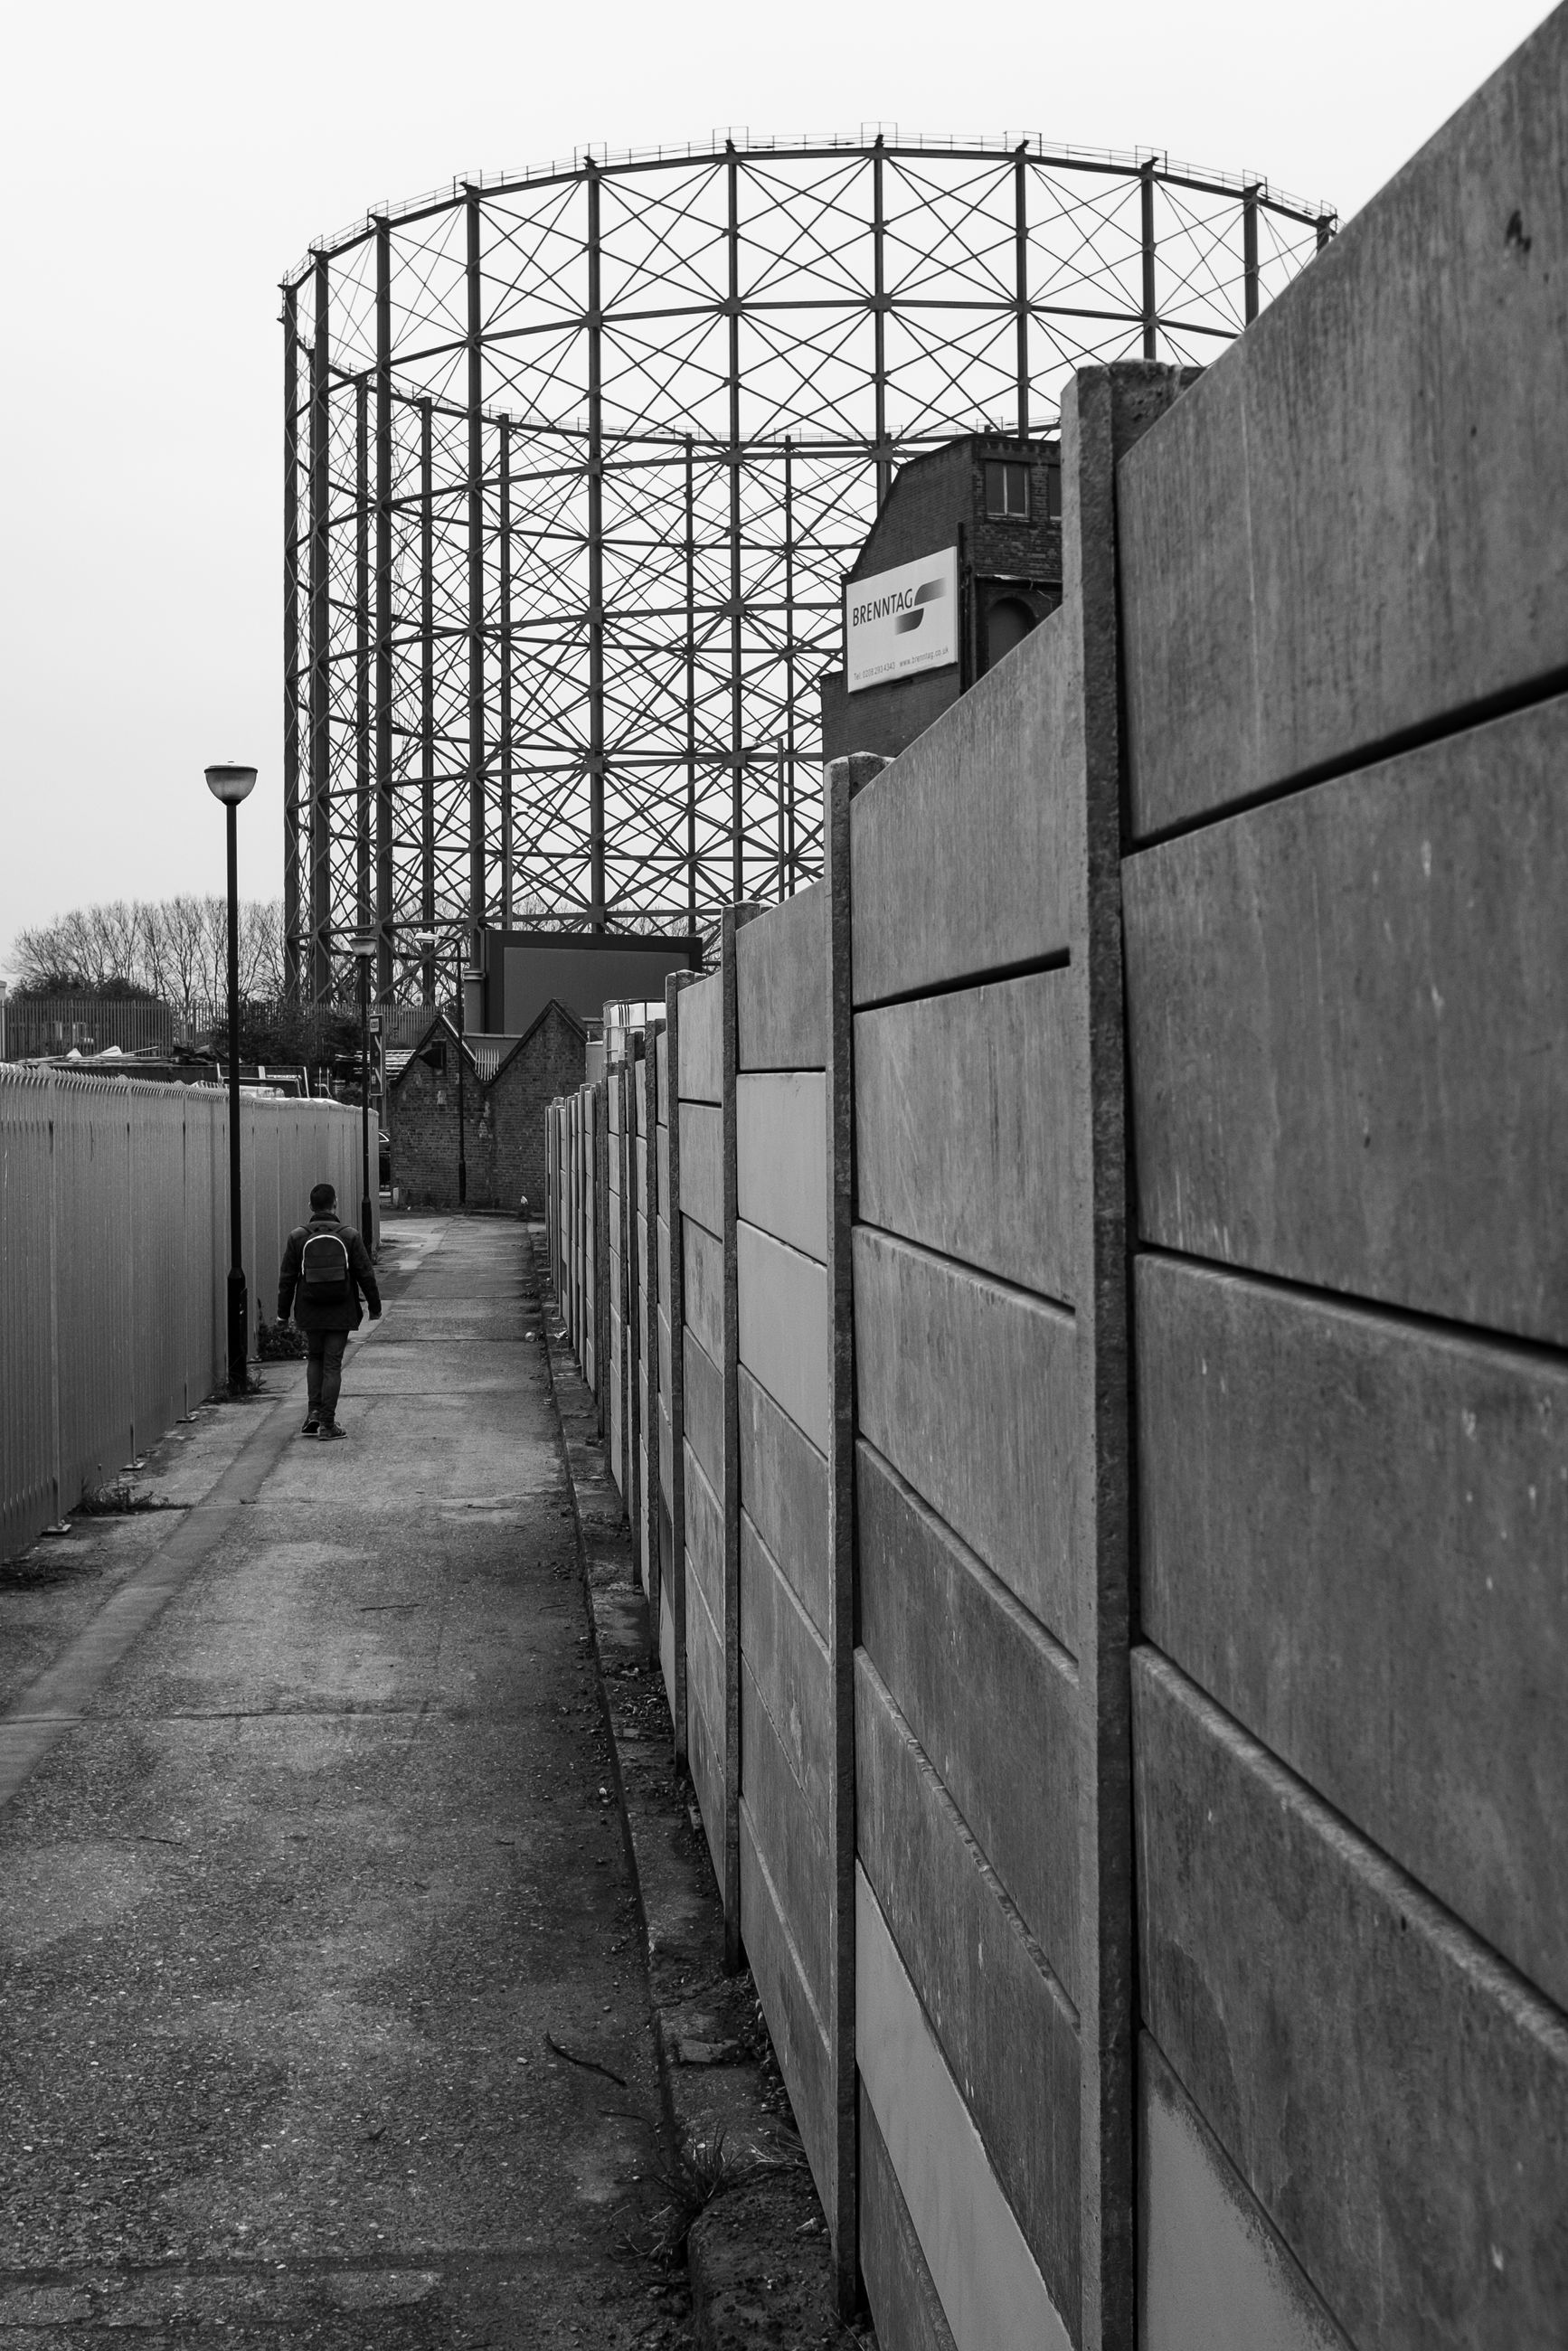 architecture, built structure, real people, full length, one person, day, men, lifestyles, walking, outdoors, building exterior, the way forward, nature, sky, rear view, leisure activity, footpath, direction, wall - building feature